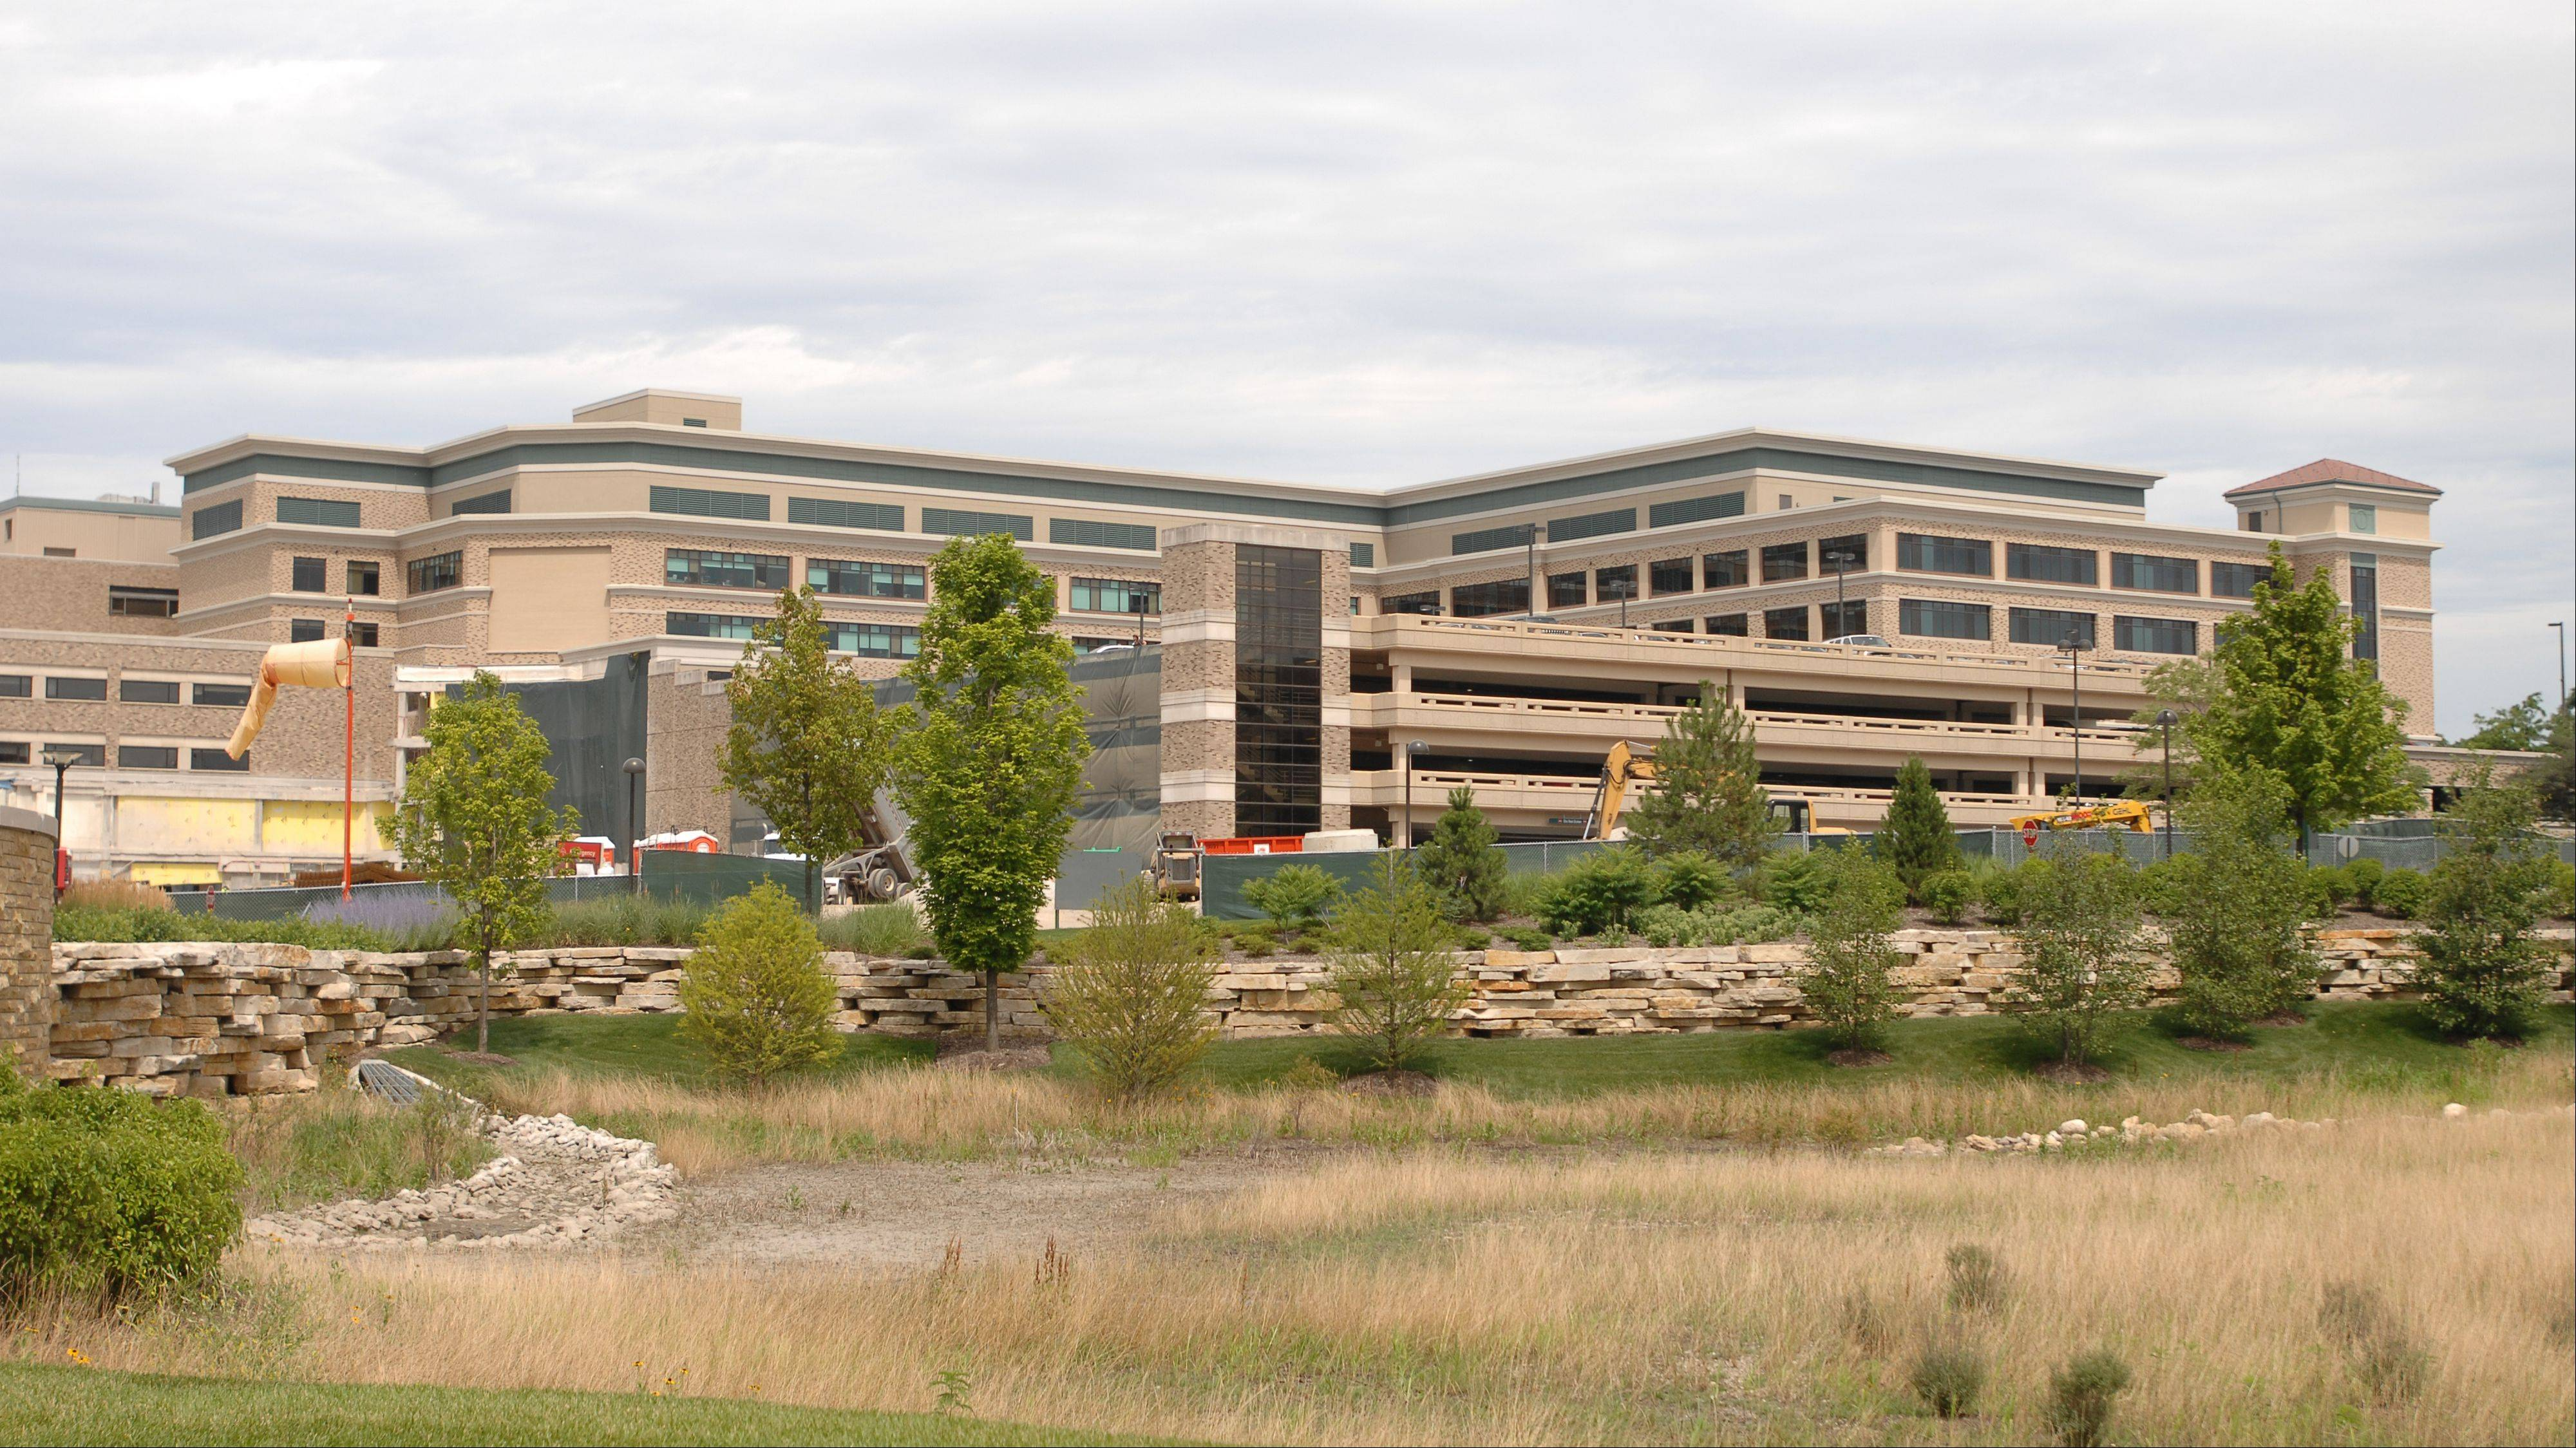 DuPage-based Cadence Health preparing to merge with Rockford